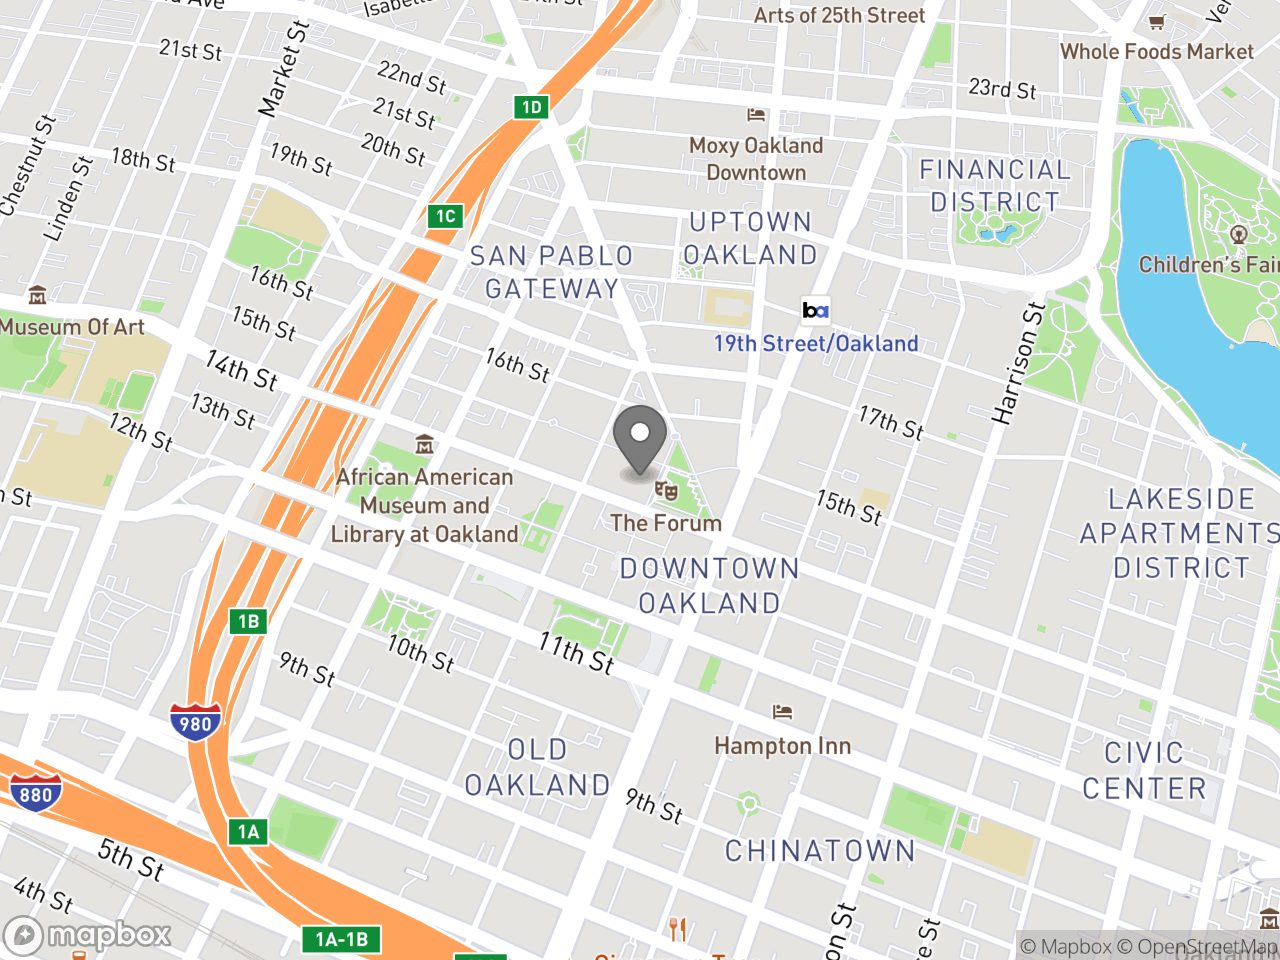 Map image for Public Ethics Commission, located at 1 Frank H Ogawa Plaza in Oakland, CA 94612